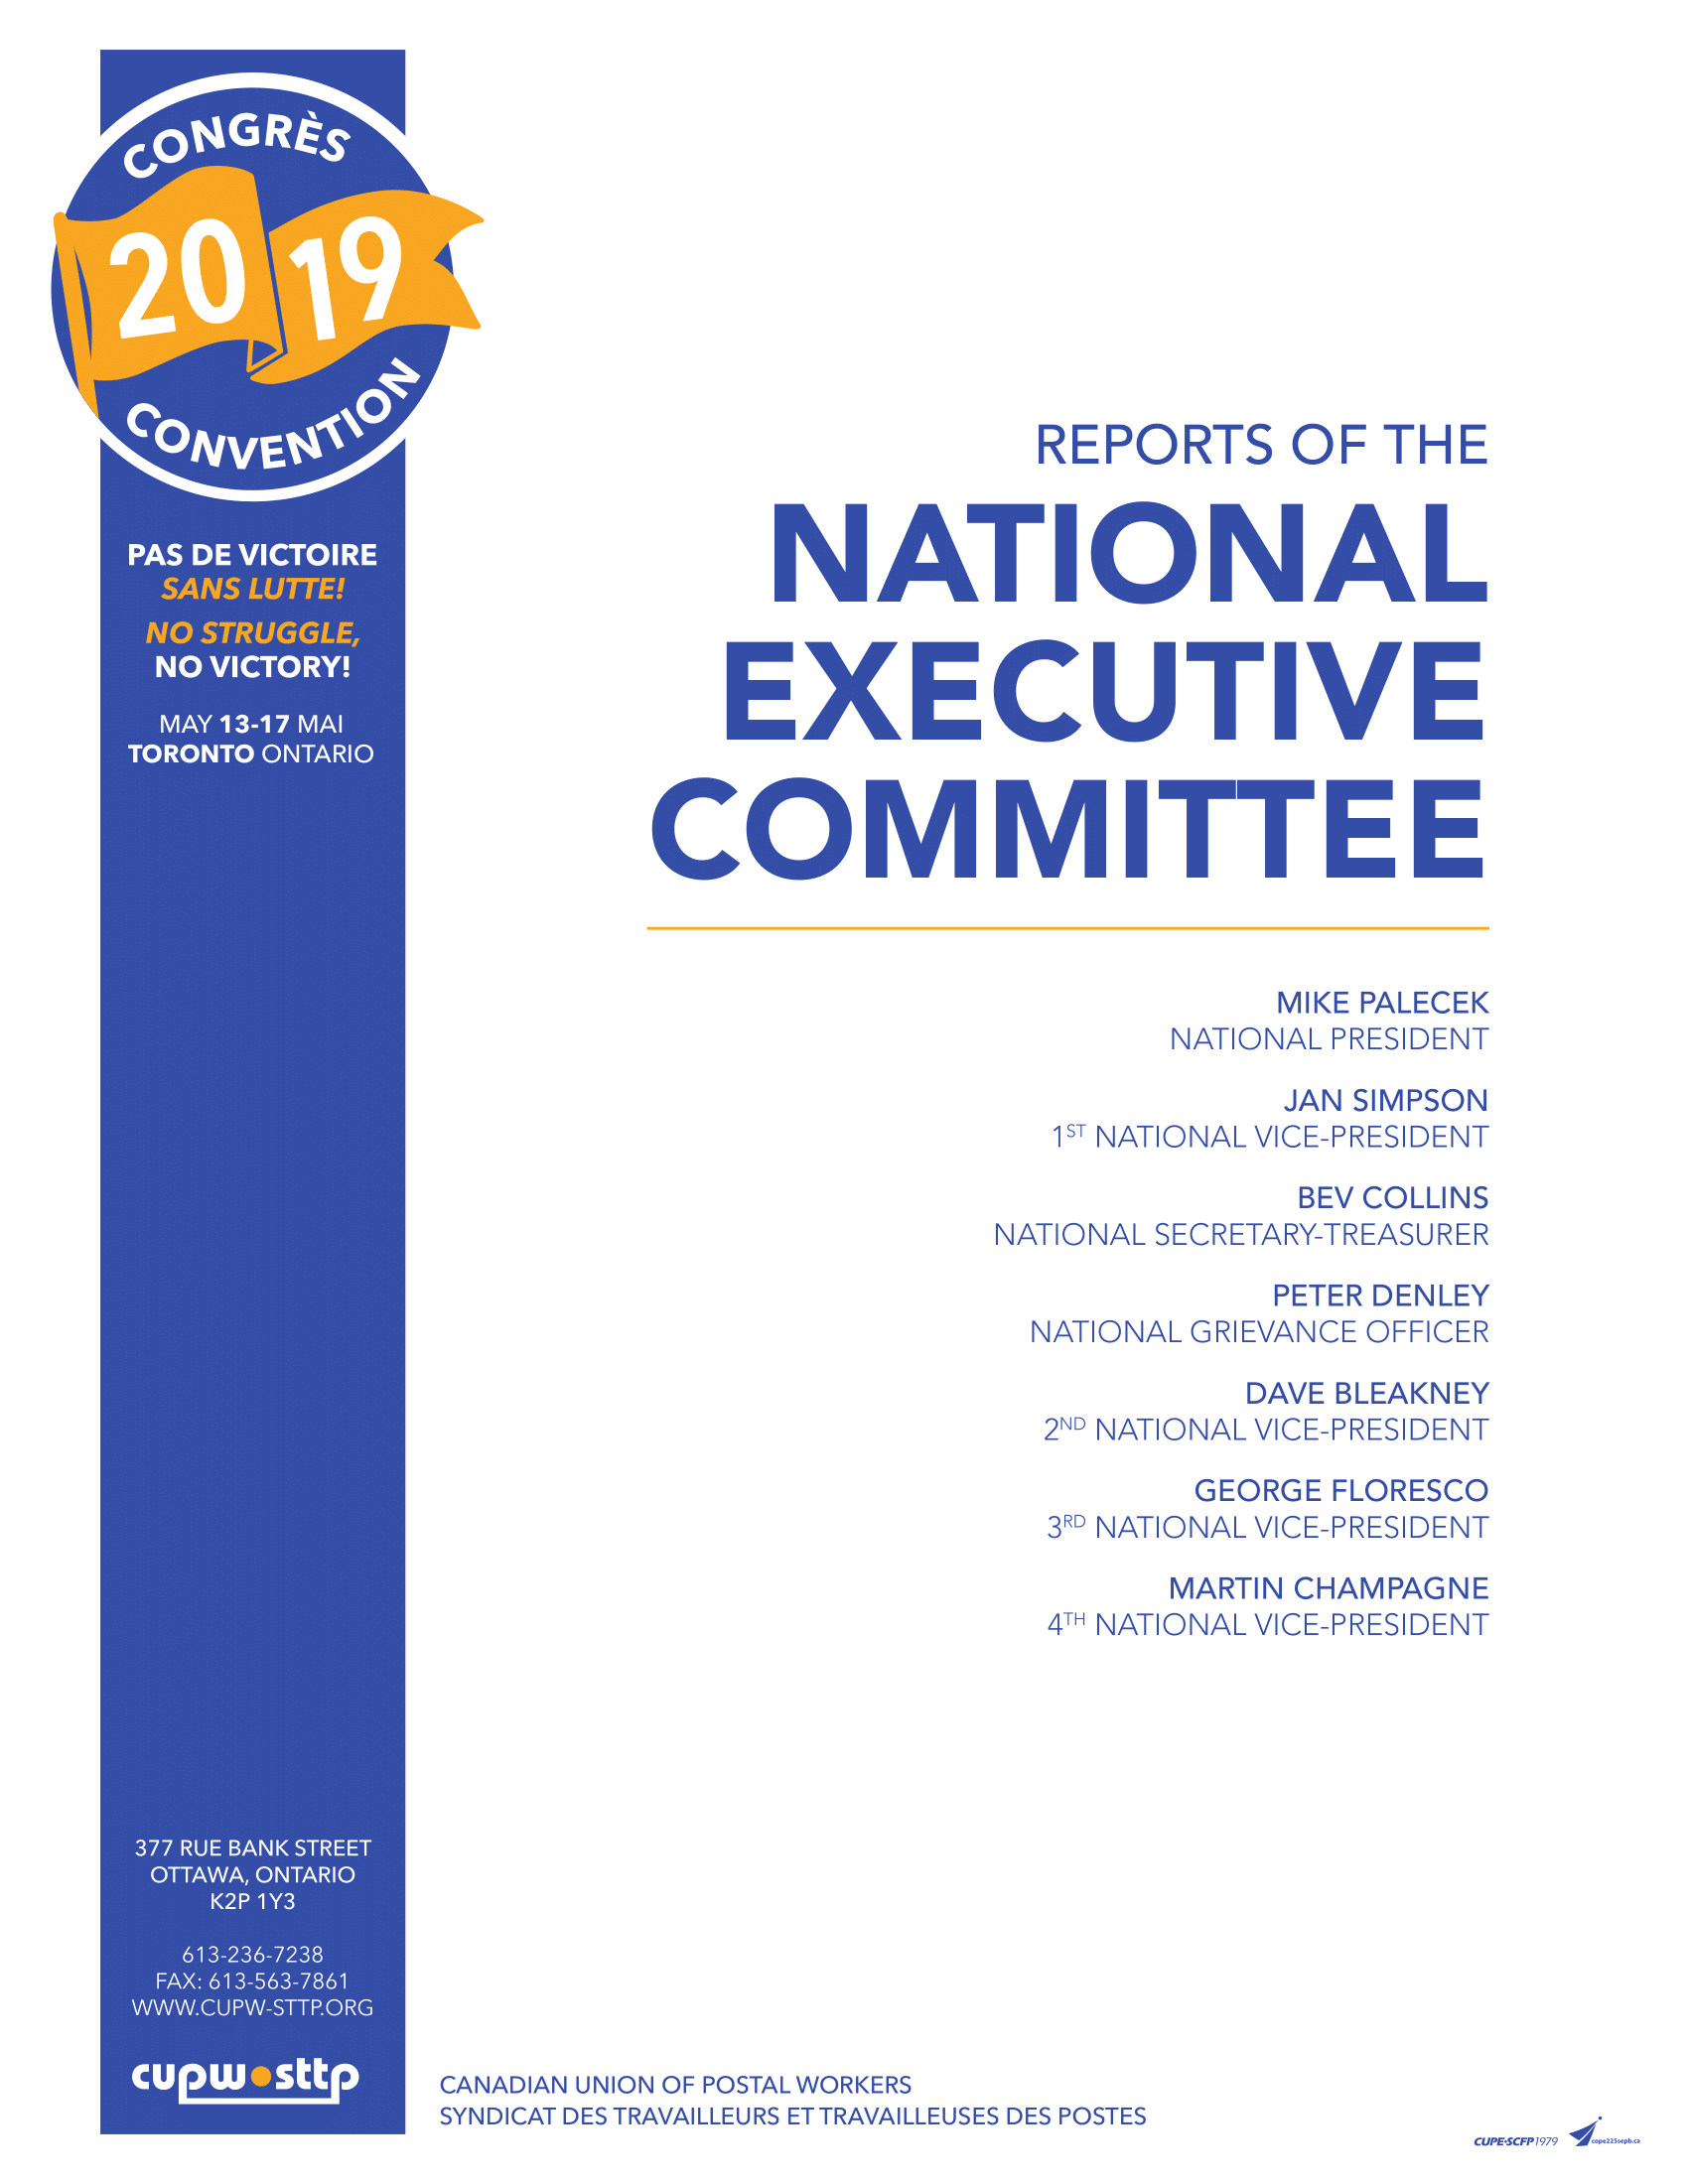 Reports of the members of the National Executive Committee (2019)